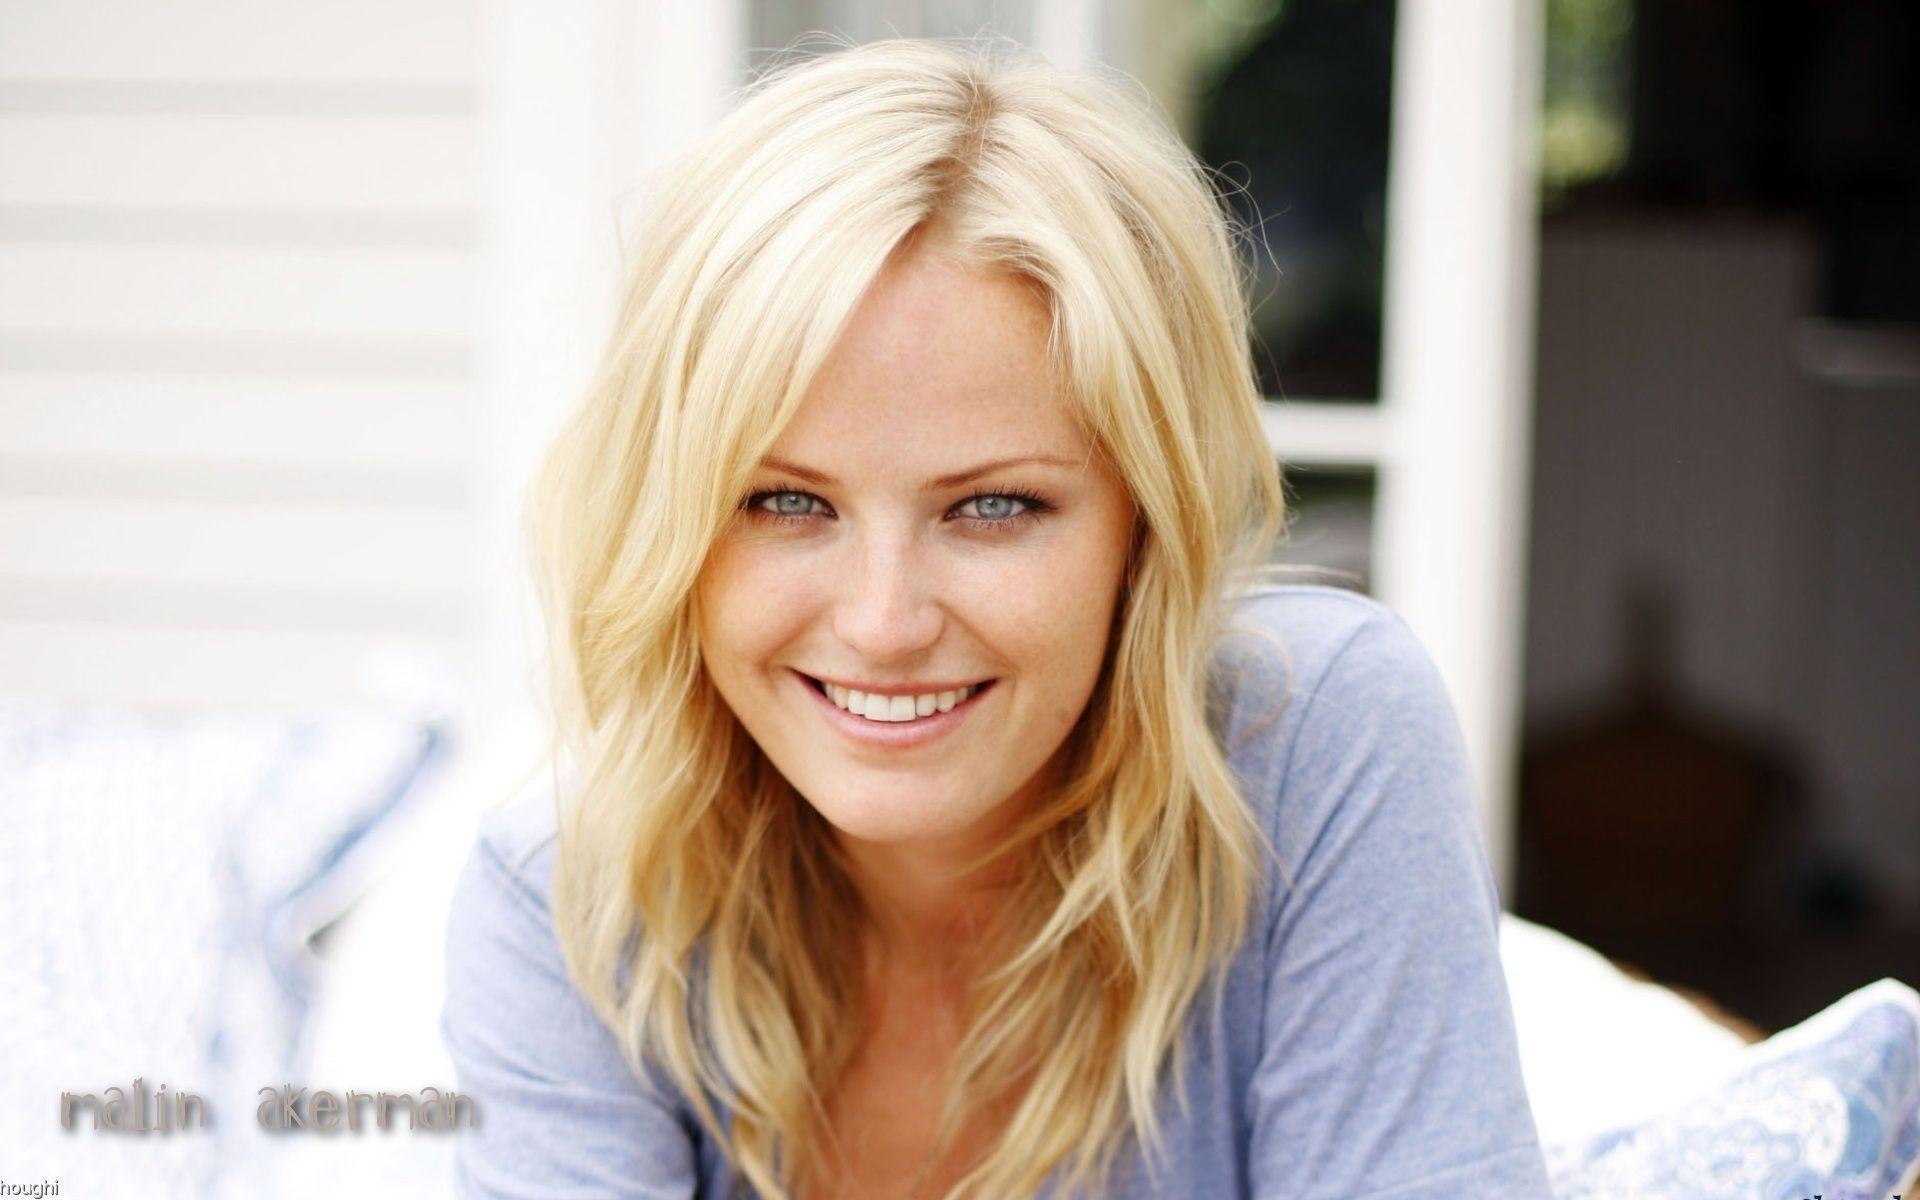 Malin Akerman Joins Showtime Malin Akerman